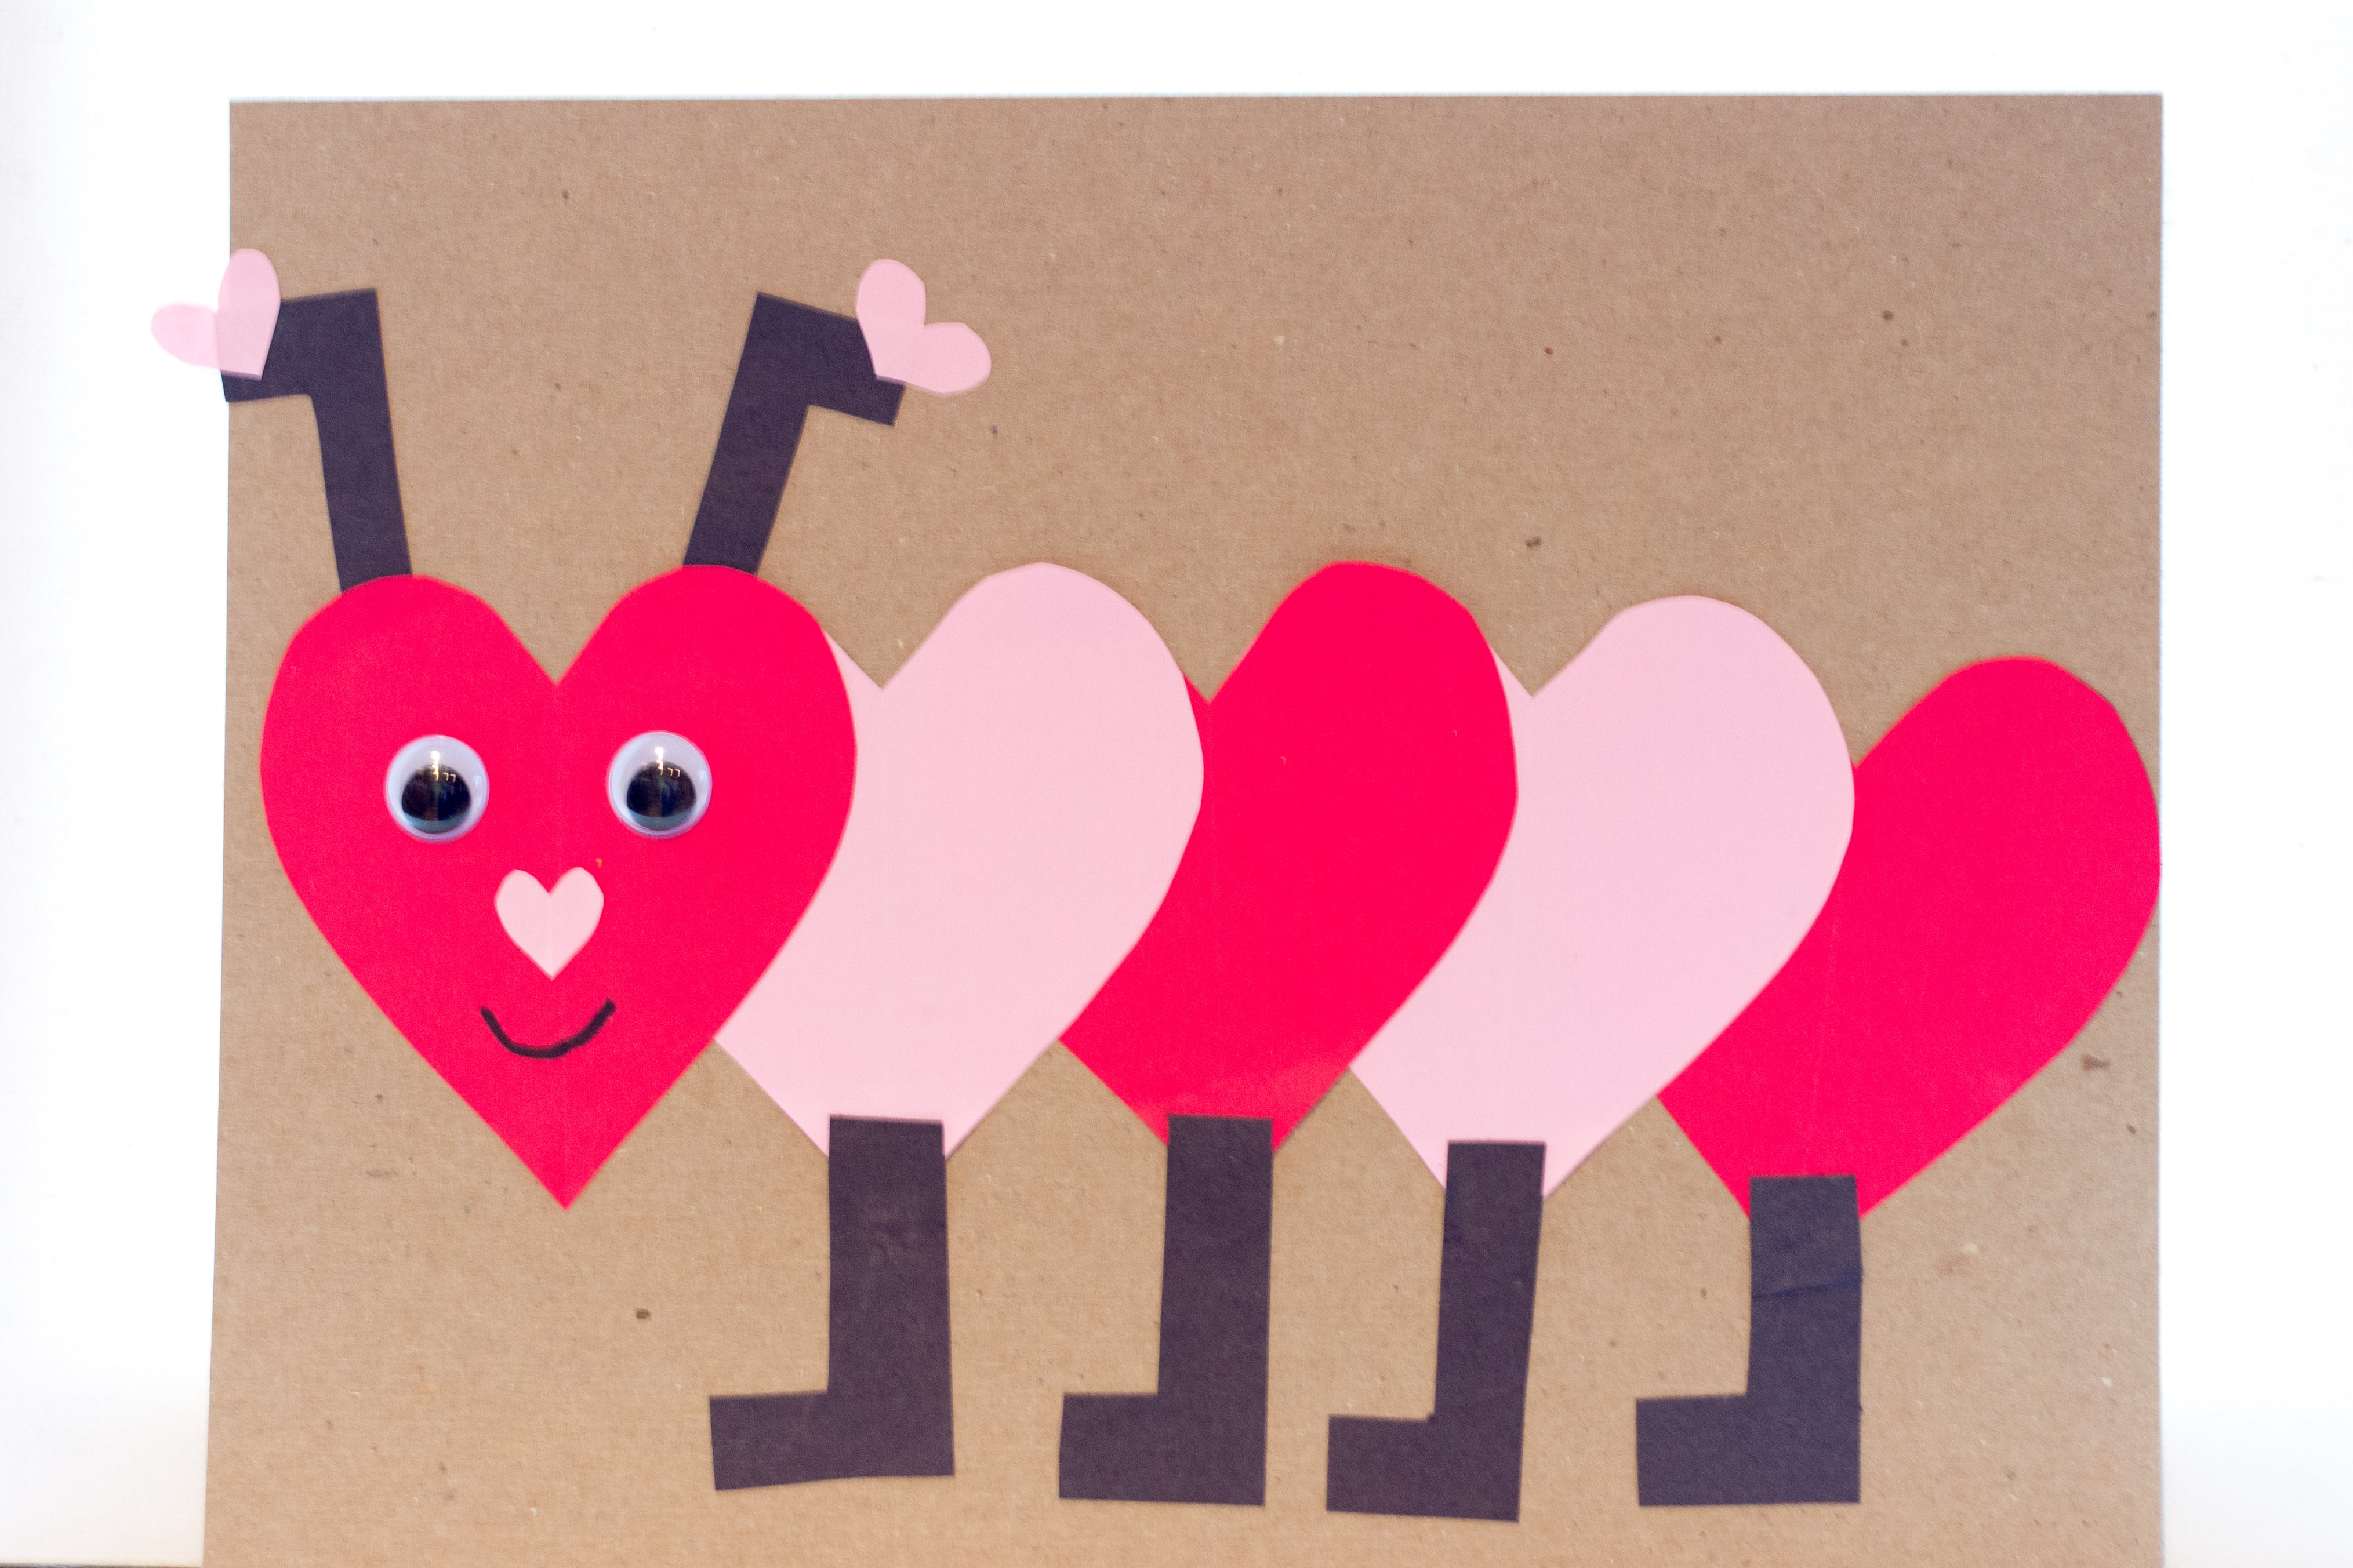 Best ideas about Valentine Arts And Crafts For Preschoolers . Save or Pin kindergarten valentines project Now.